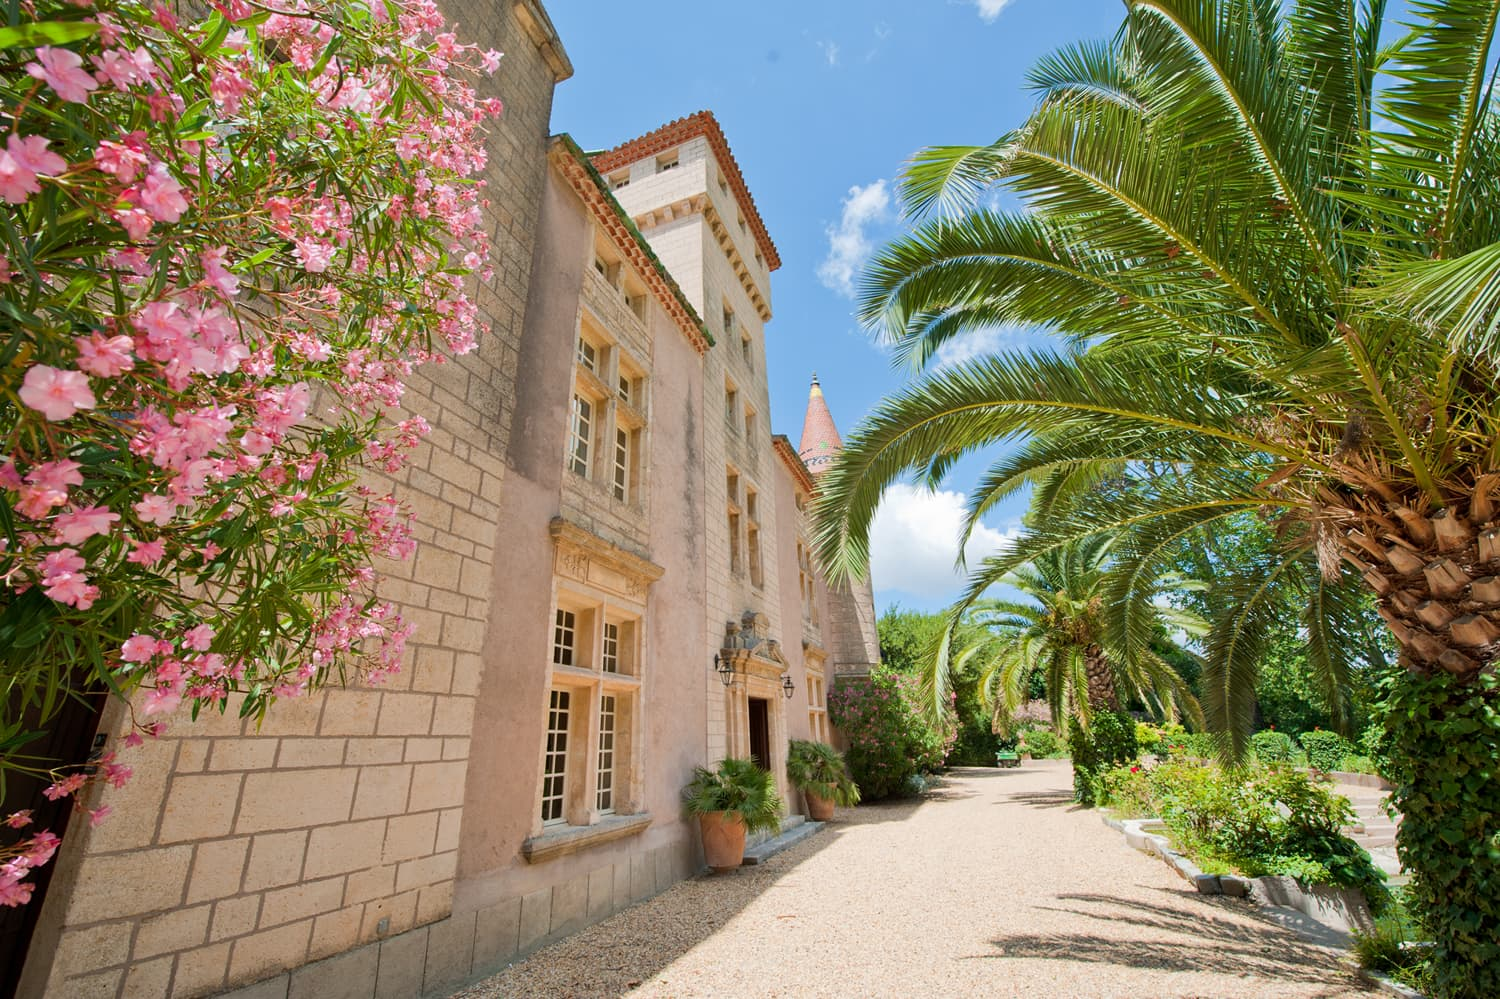 Holiday rental château in Languedoc